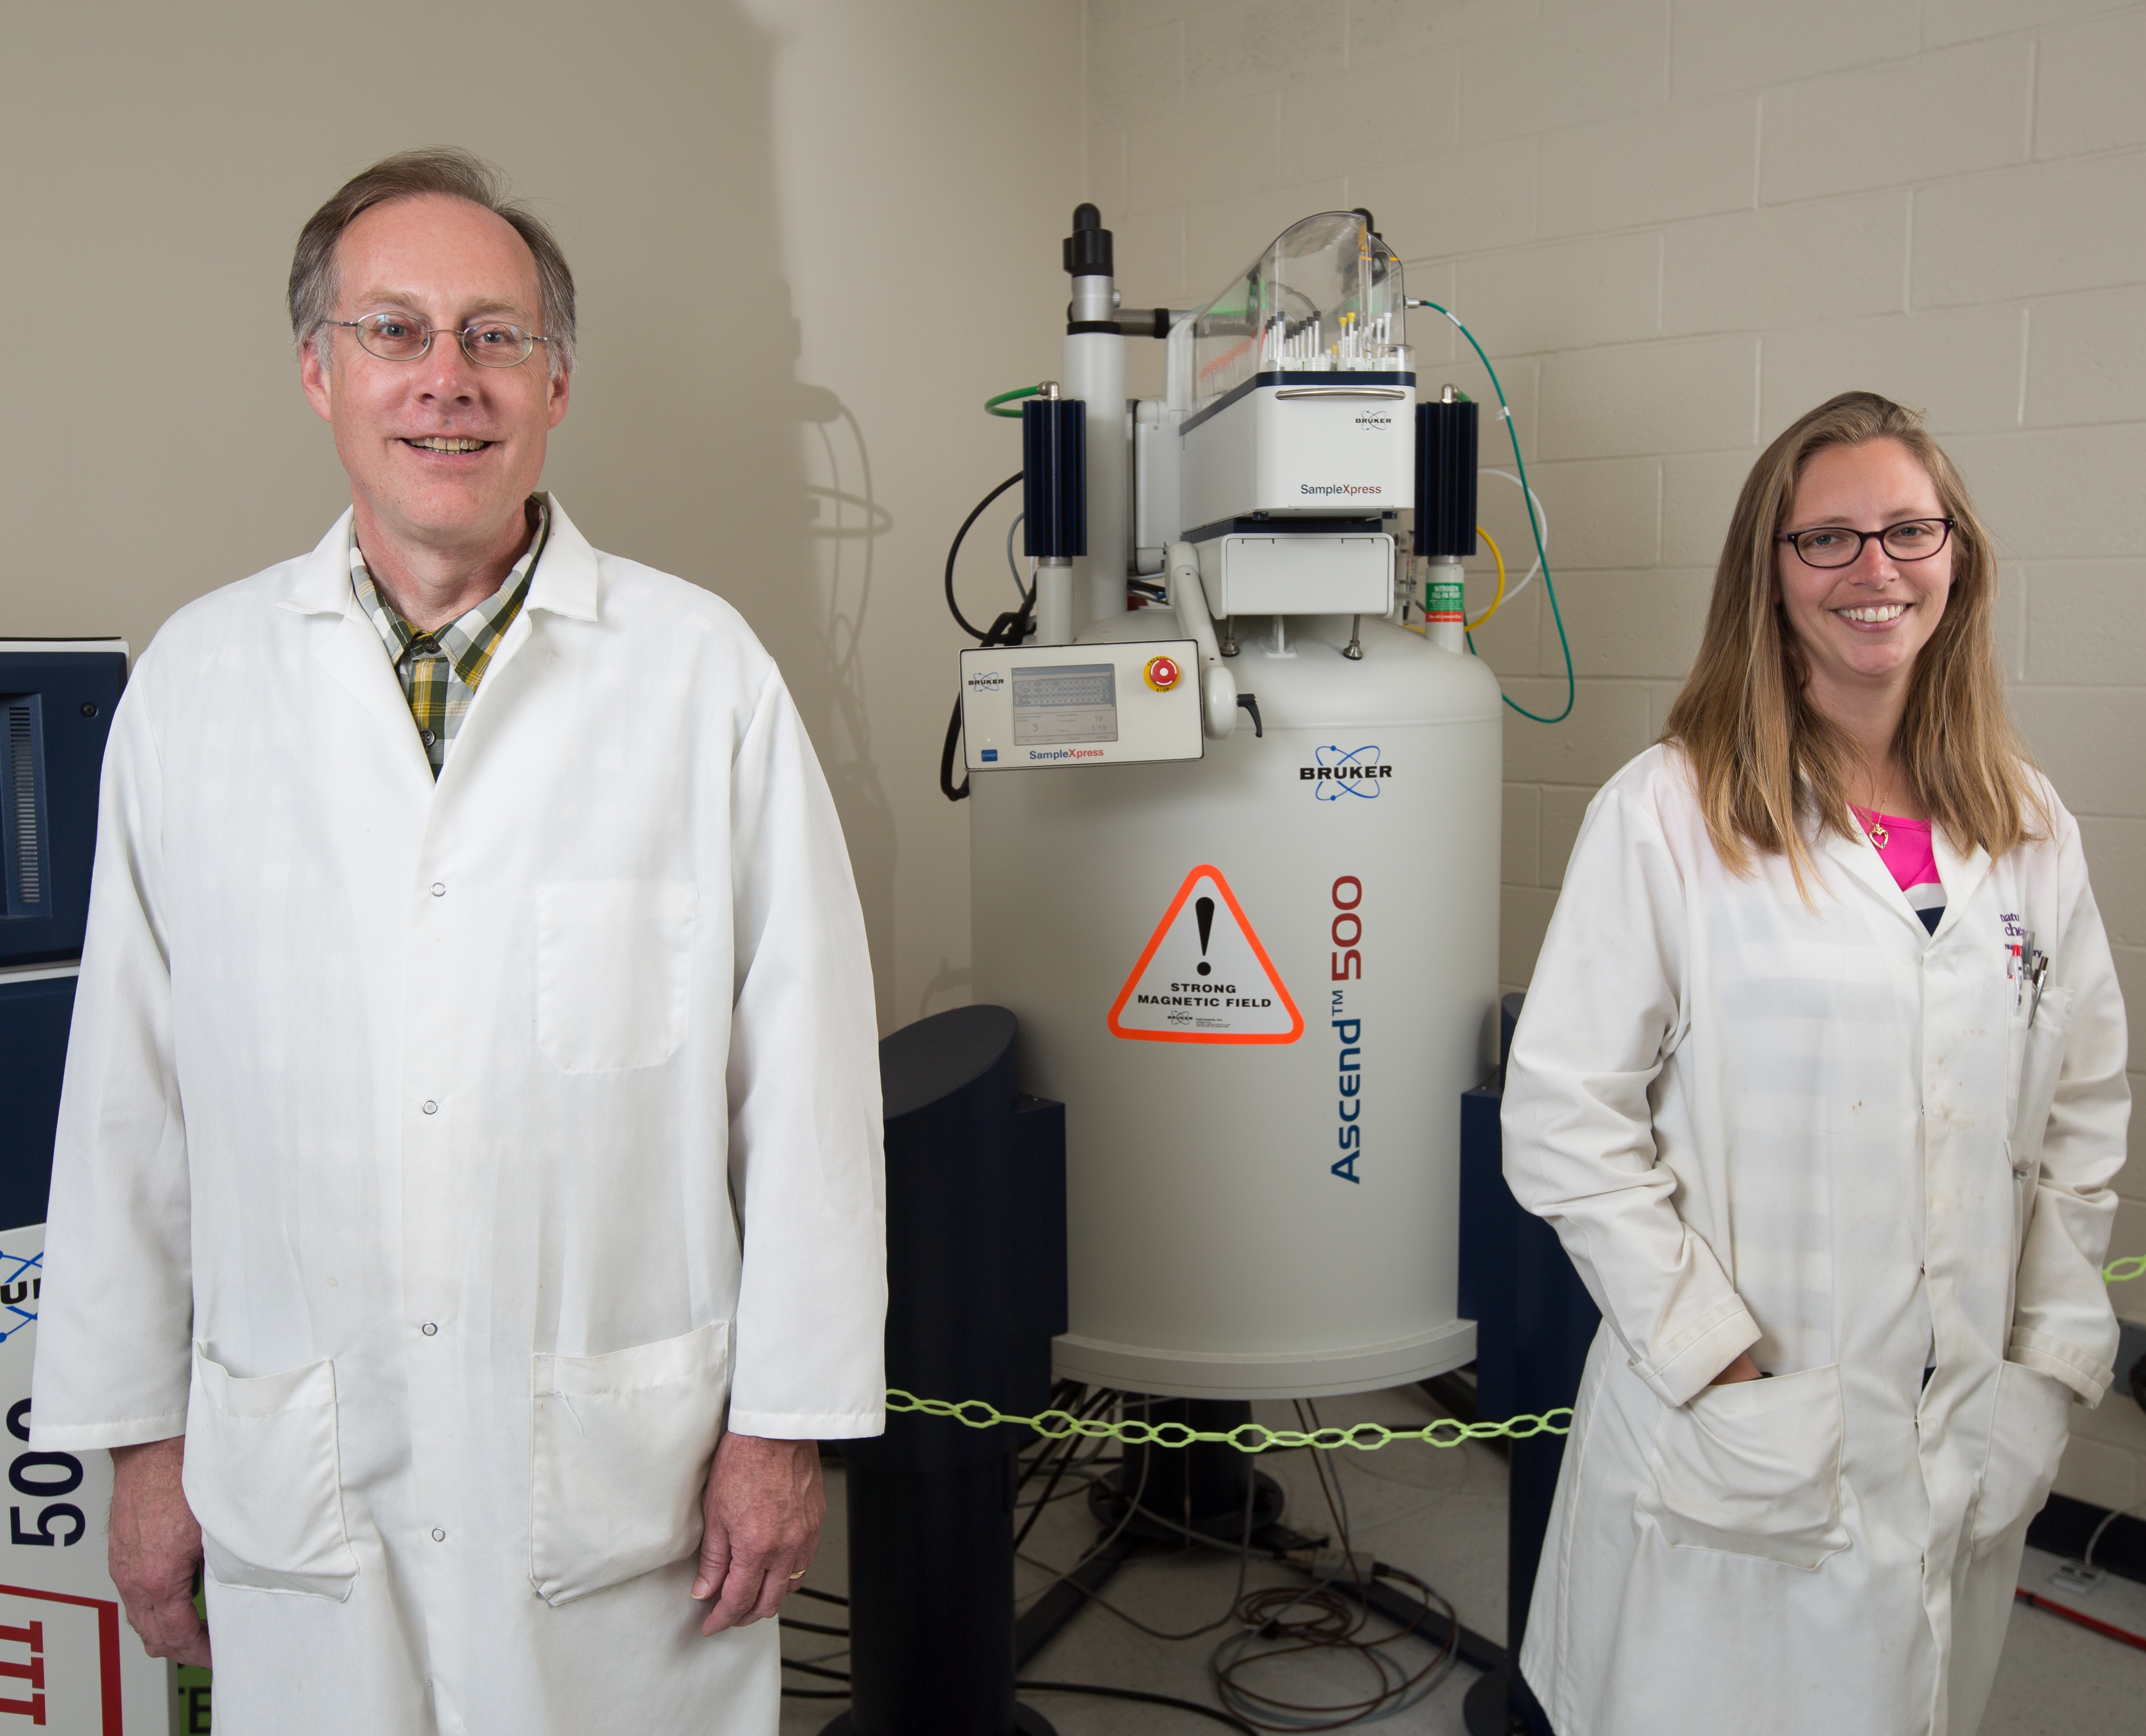 Brian Stockman, Ph.D. and Melissa VanAlstine-Parris, Ph.D.